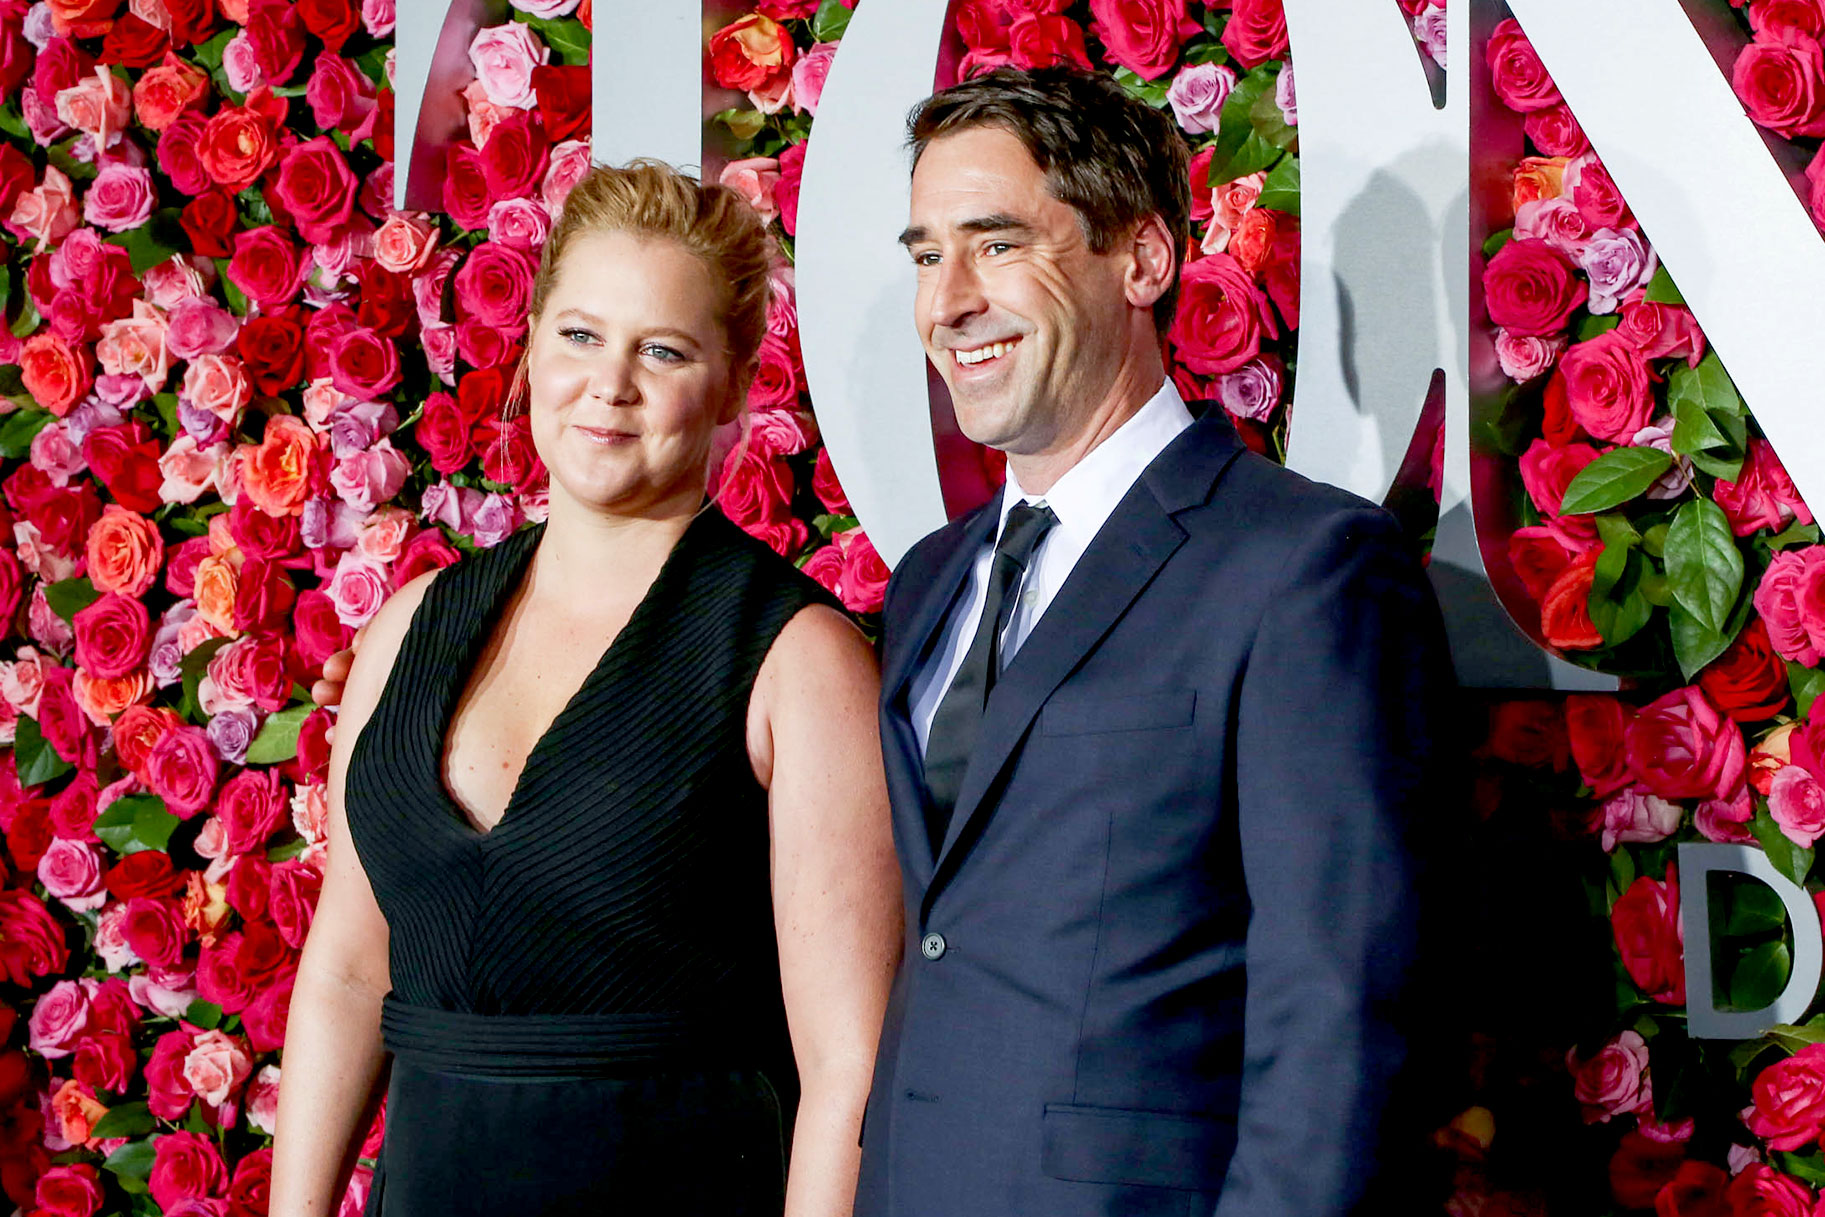 Amy Schumer Husband Chris Fischer